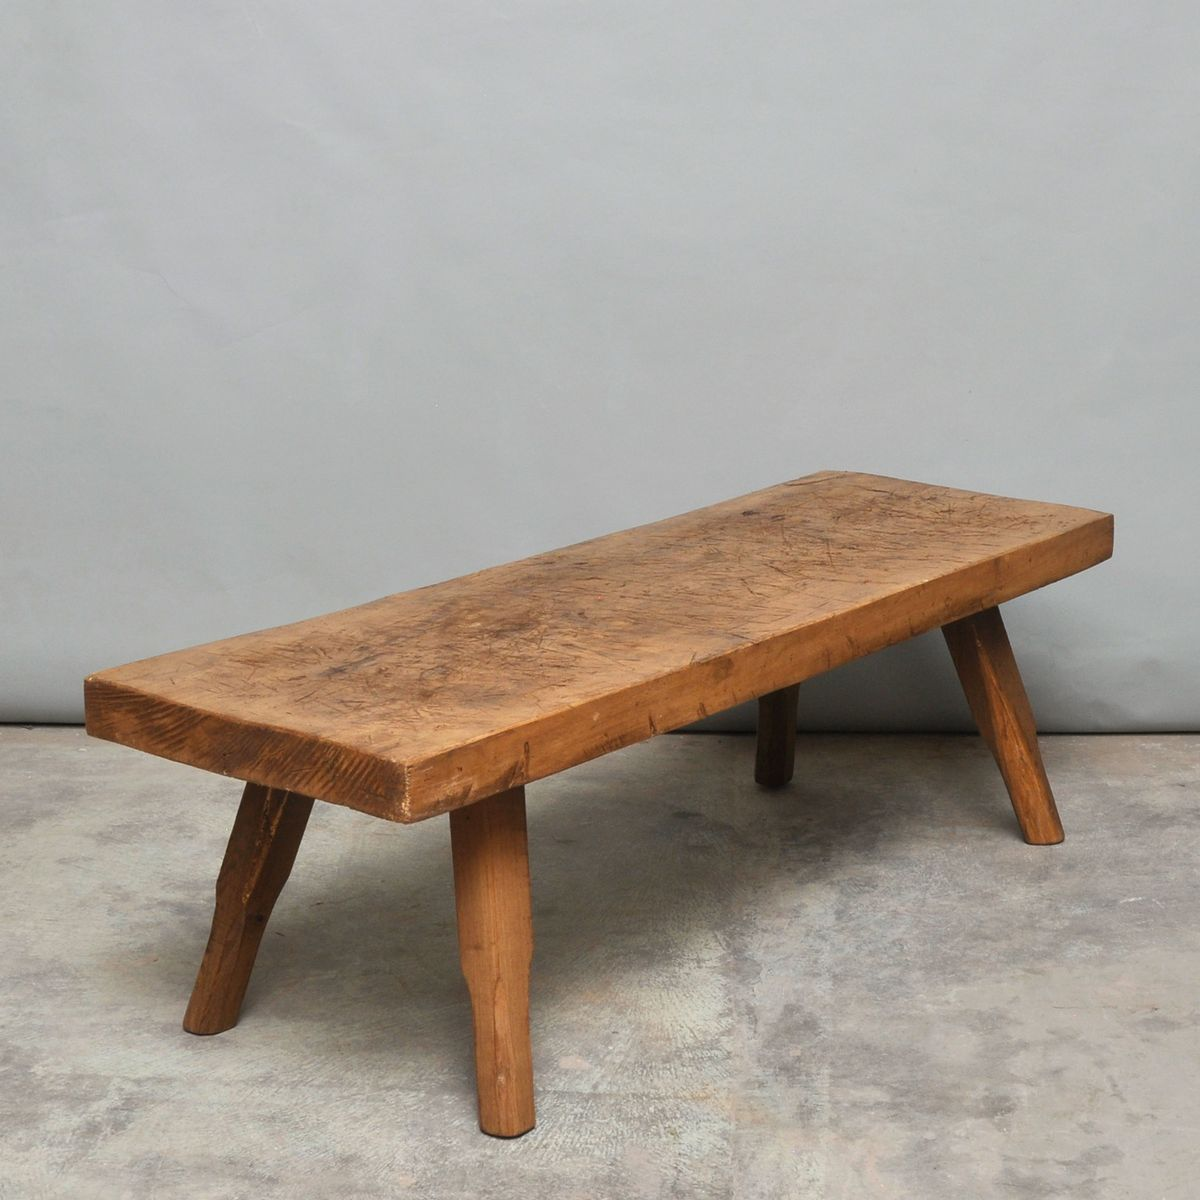 Vintage Oak Butchers Block Coffee Table or Bench 1930s for sale at